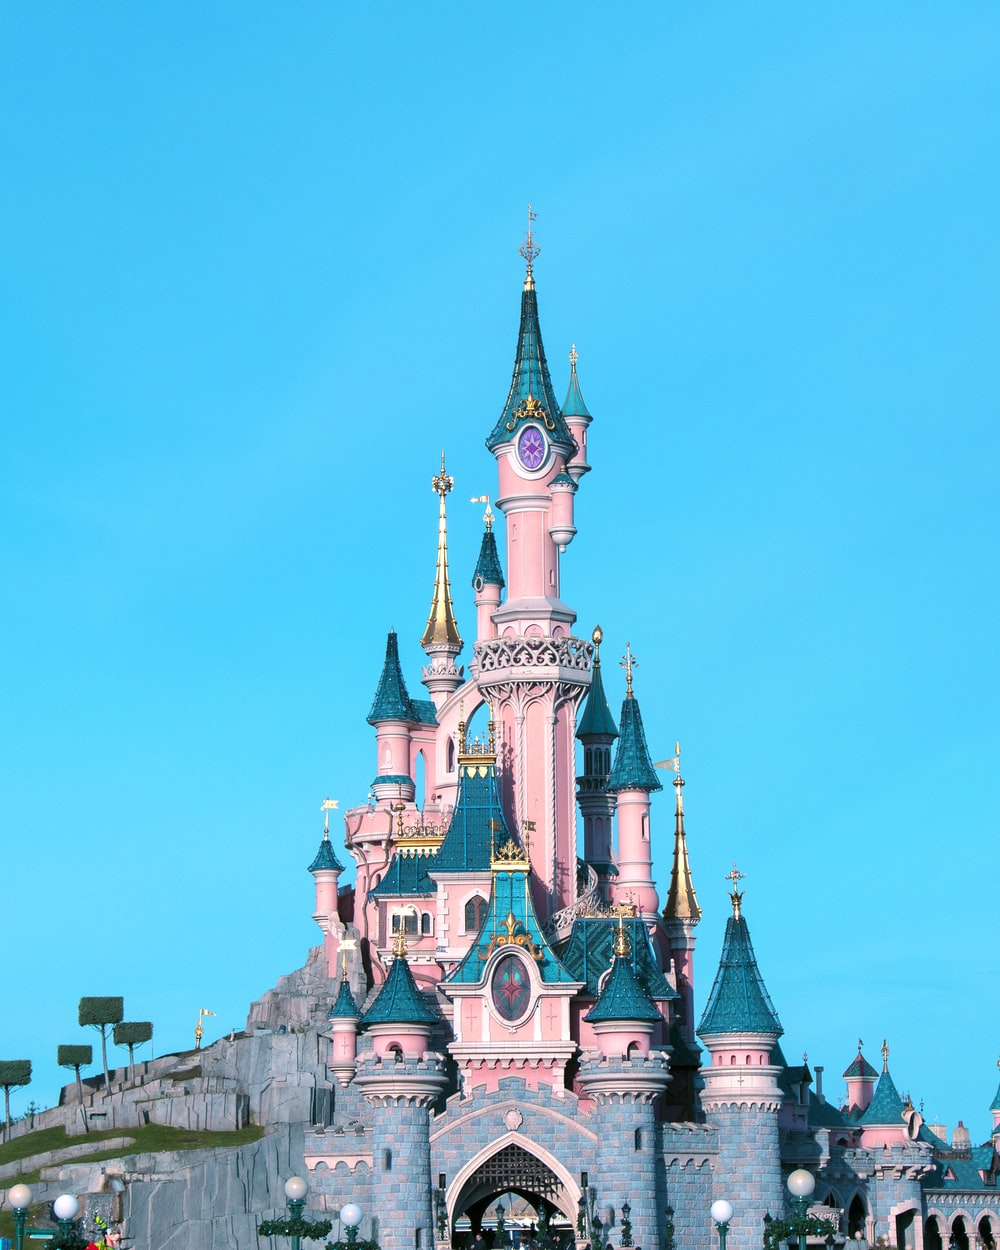 Disneyland park, Sleeping Beauty's castle